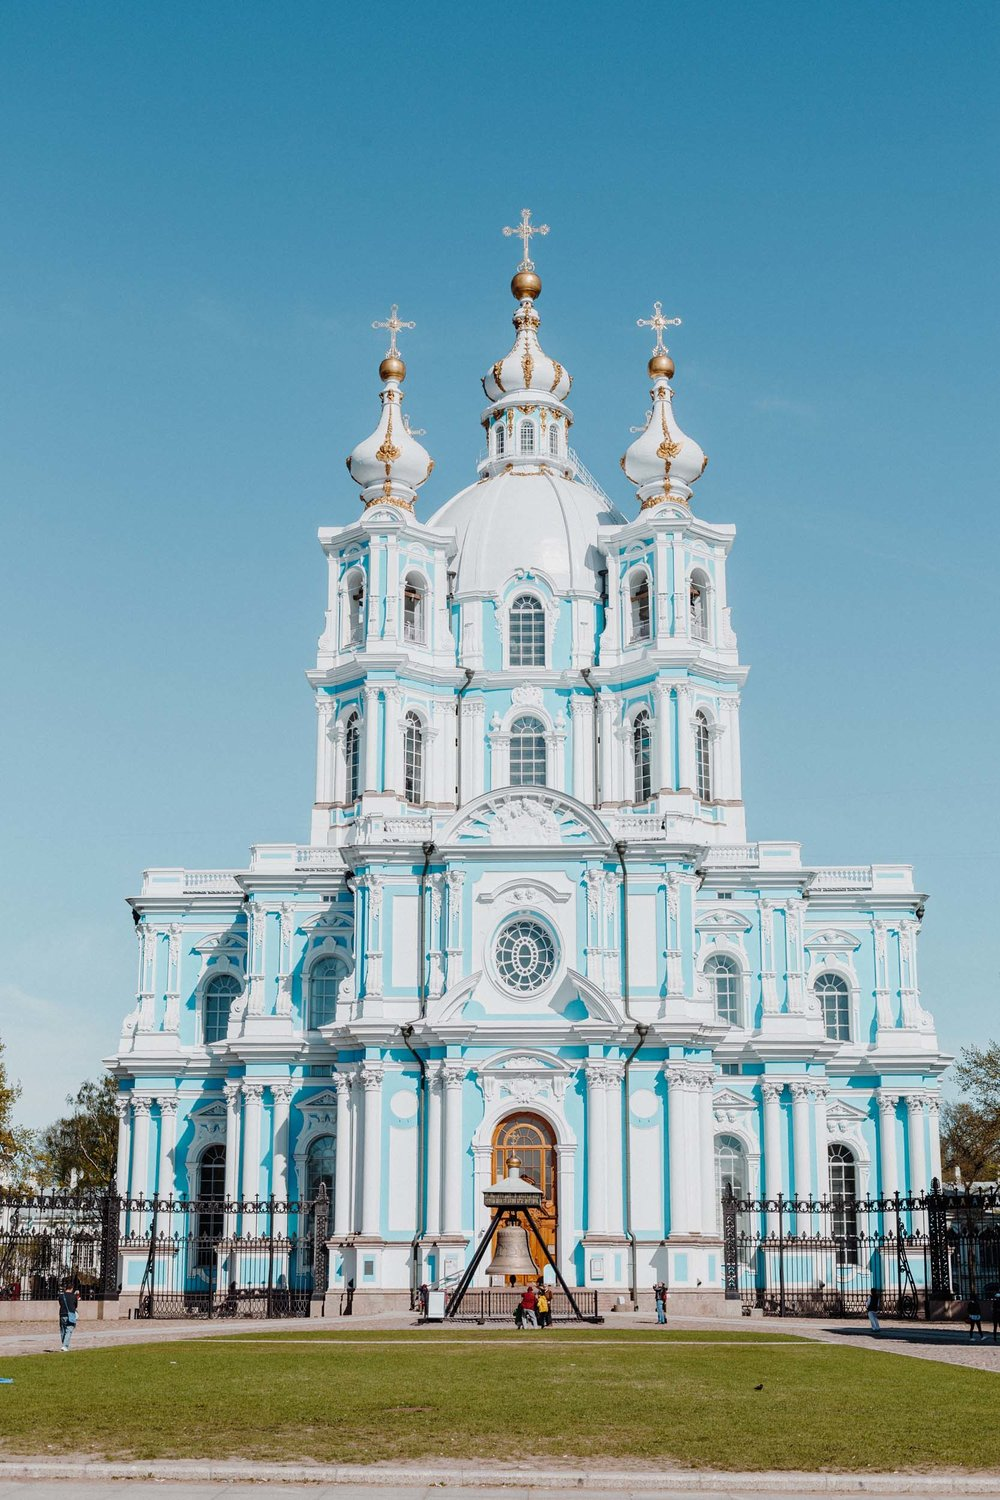 Check out these amazing photos of St. Petersburg that will have you packing your bags to go there on the Flytographer blog! | Travel + Vacation Photographer | Family Vacations | Engagement Proposals | Honeymoons | Anniversary Gifts | Bachelorette Ideas | Solo Traveller Tips |  Flytographer captures your travel memories - everything from surprise proposals, honeymoons, family vacations, and more. So often you are missing out of your own photos! Flytographer solves that problem for you. Our photographers also act as informal tour guides and provide fun local tips to our customers, showing them an area of a city they may not have explored without Flytographer. Book your photographer at 1.888.211.7178 or visit our website at www.flytographer.com/book